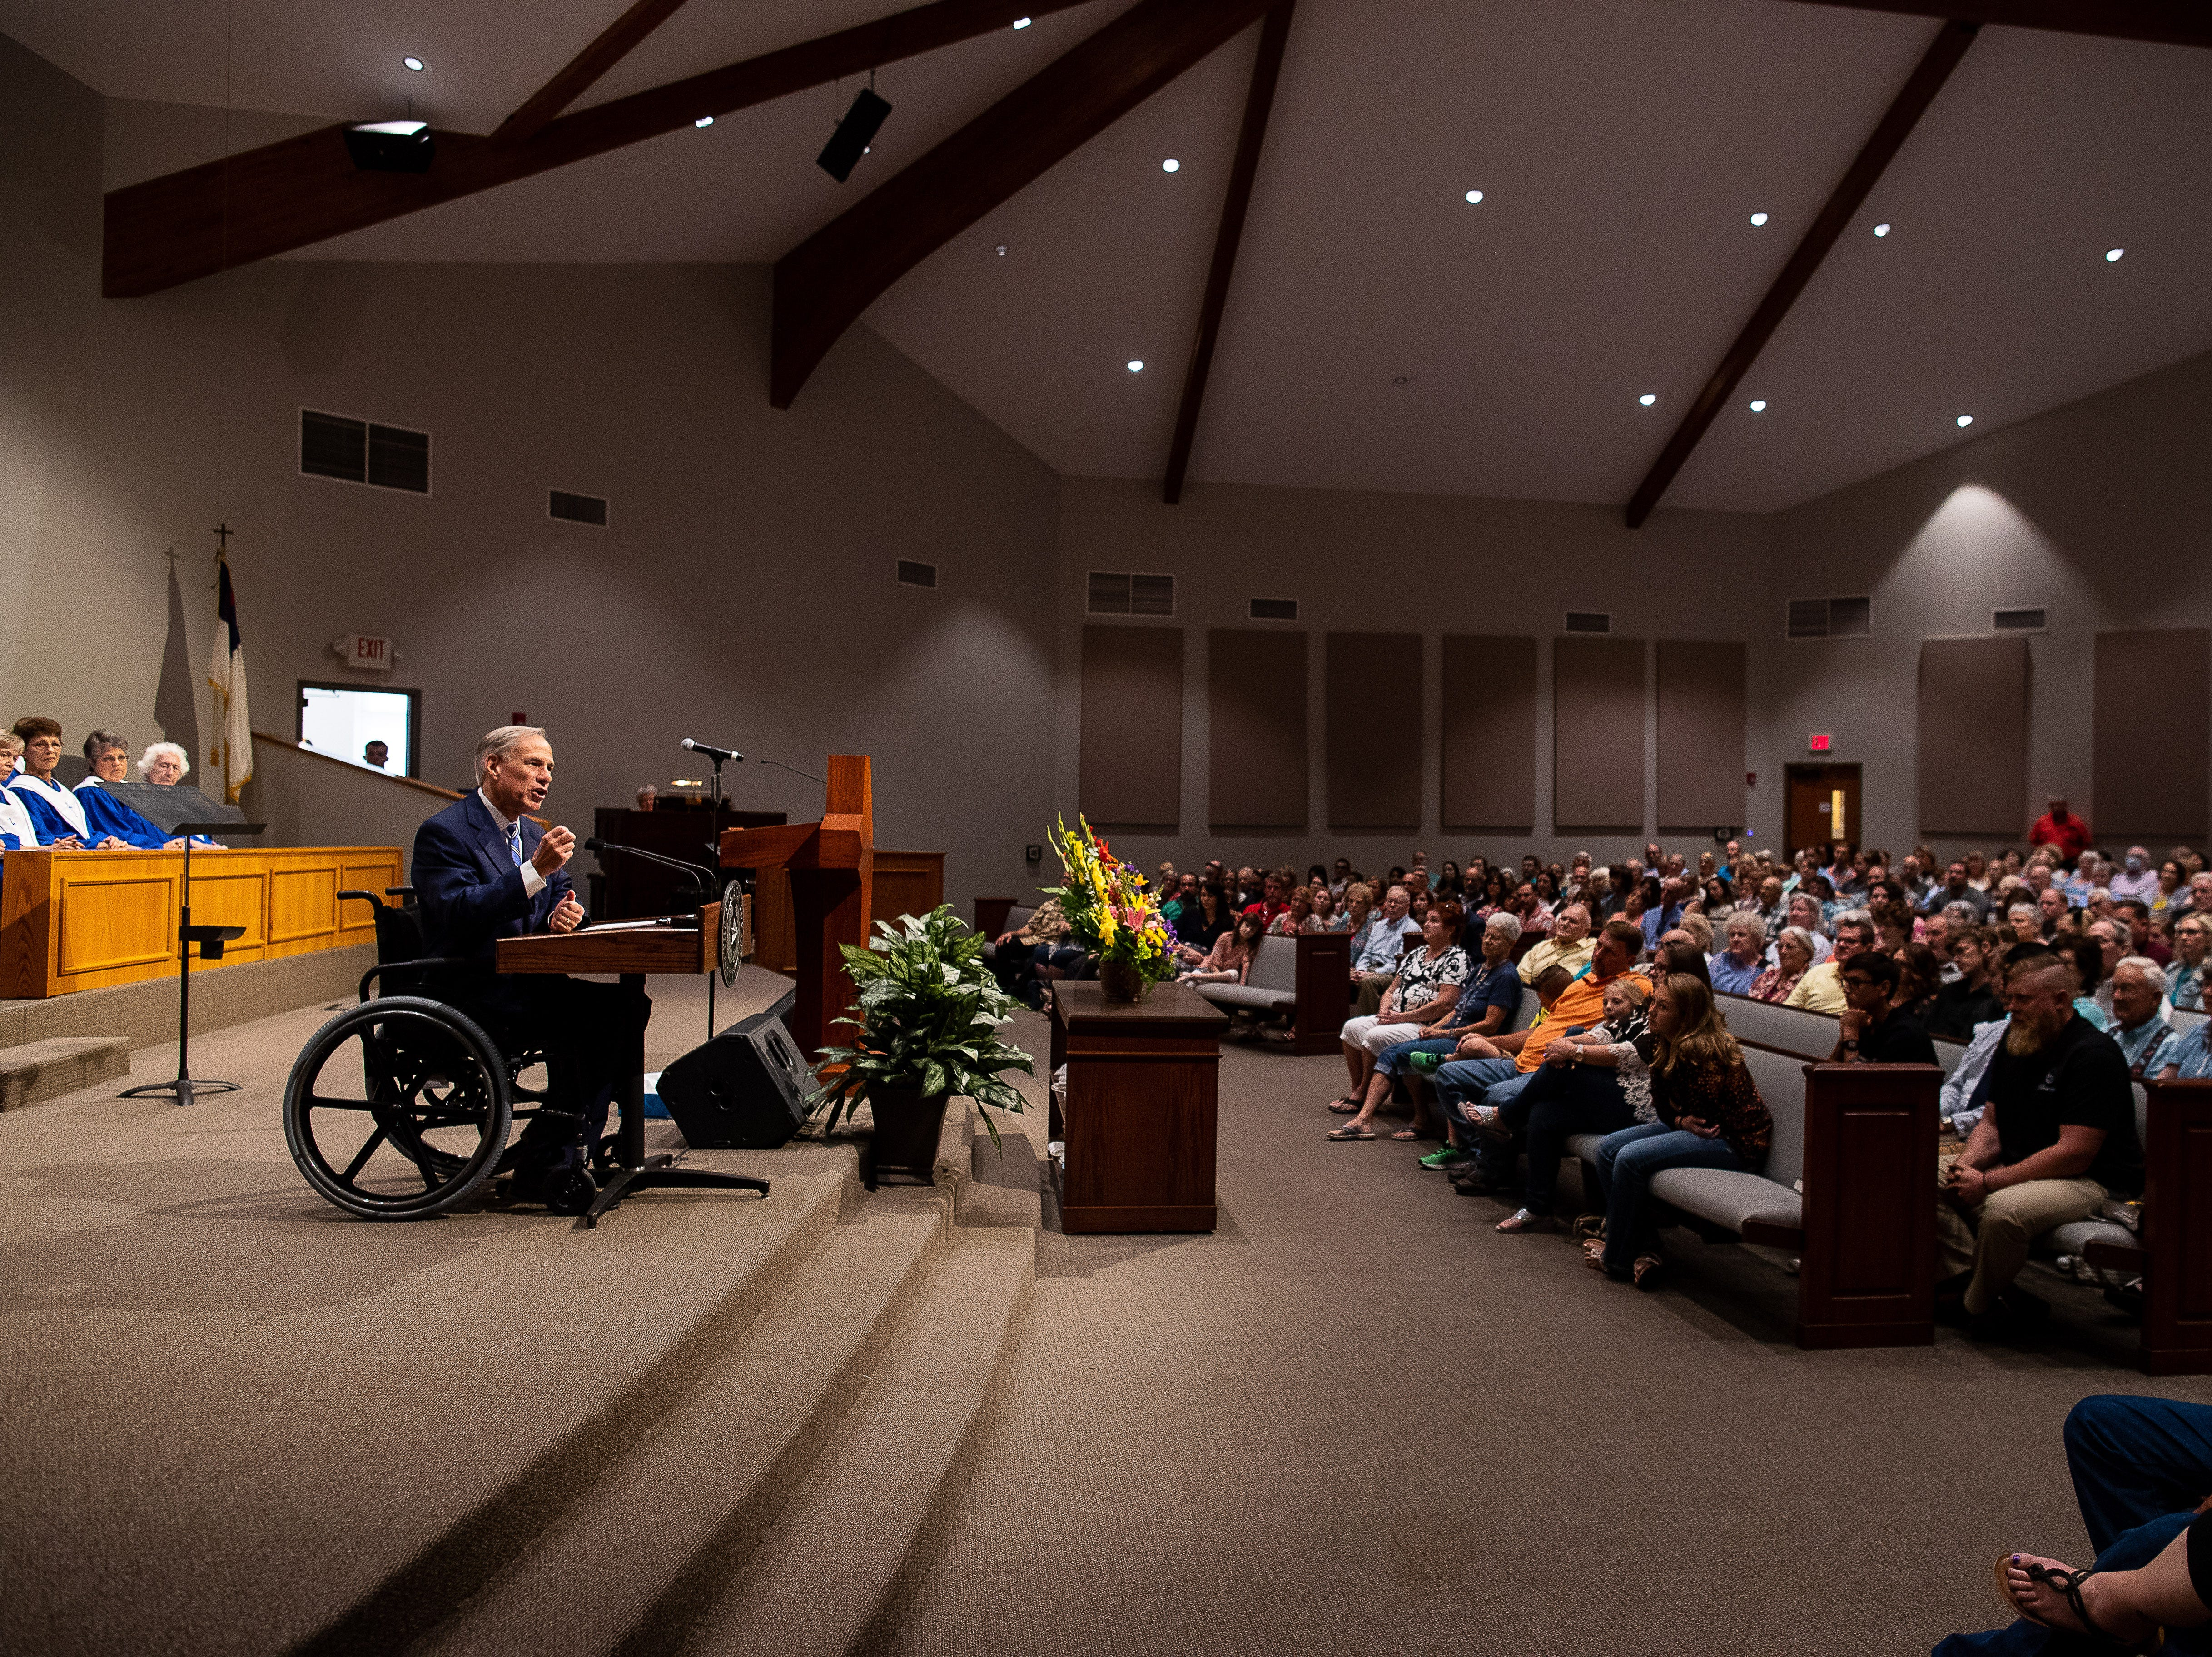 Governor Greg Abbott speaks at the First Baptist Church of Rockport during a Hurricane Harvey anniversary service on Sunday, Aug. 26, 2018.